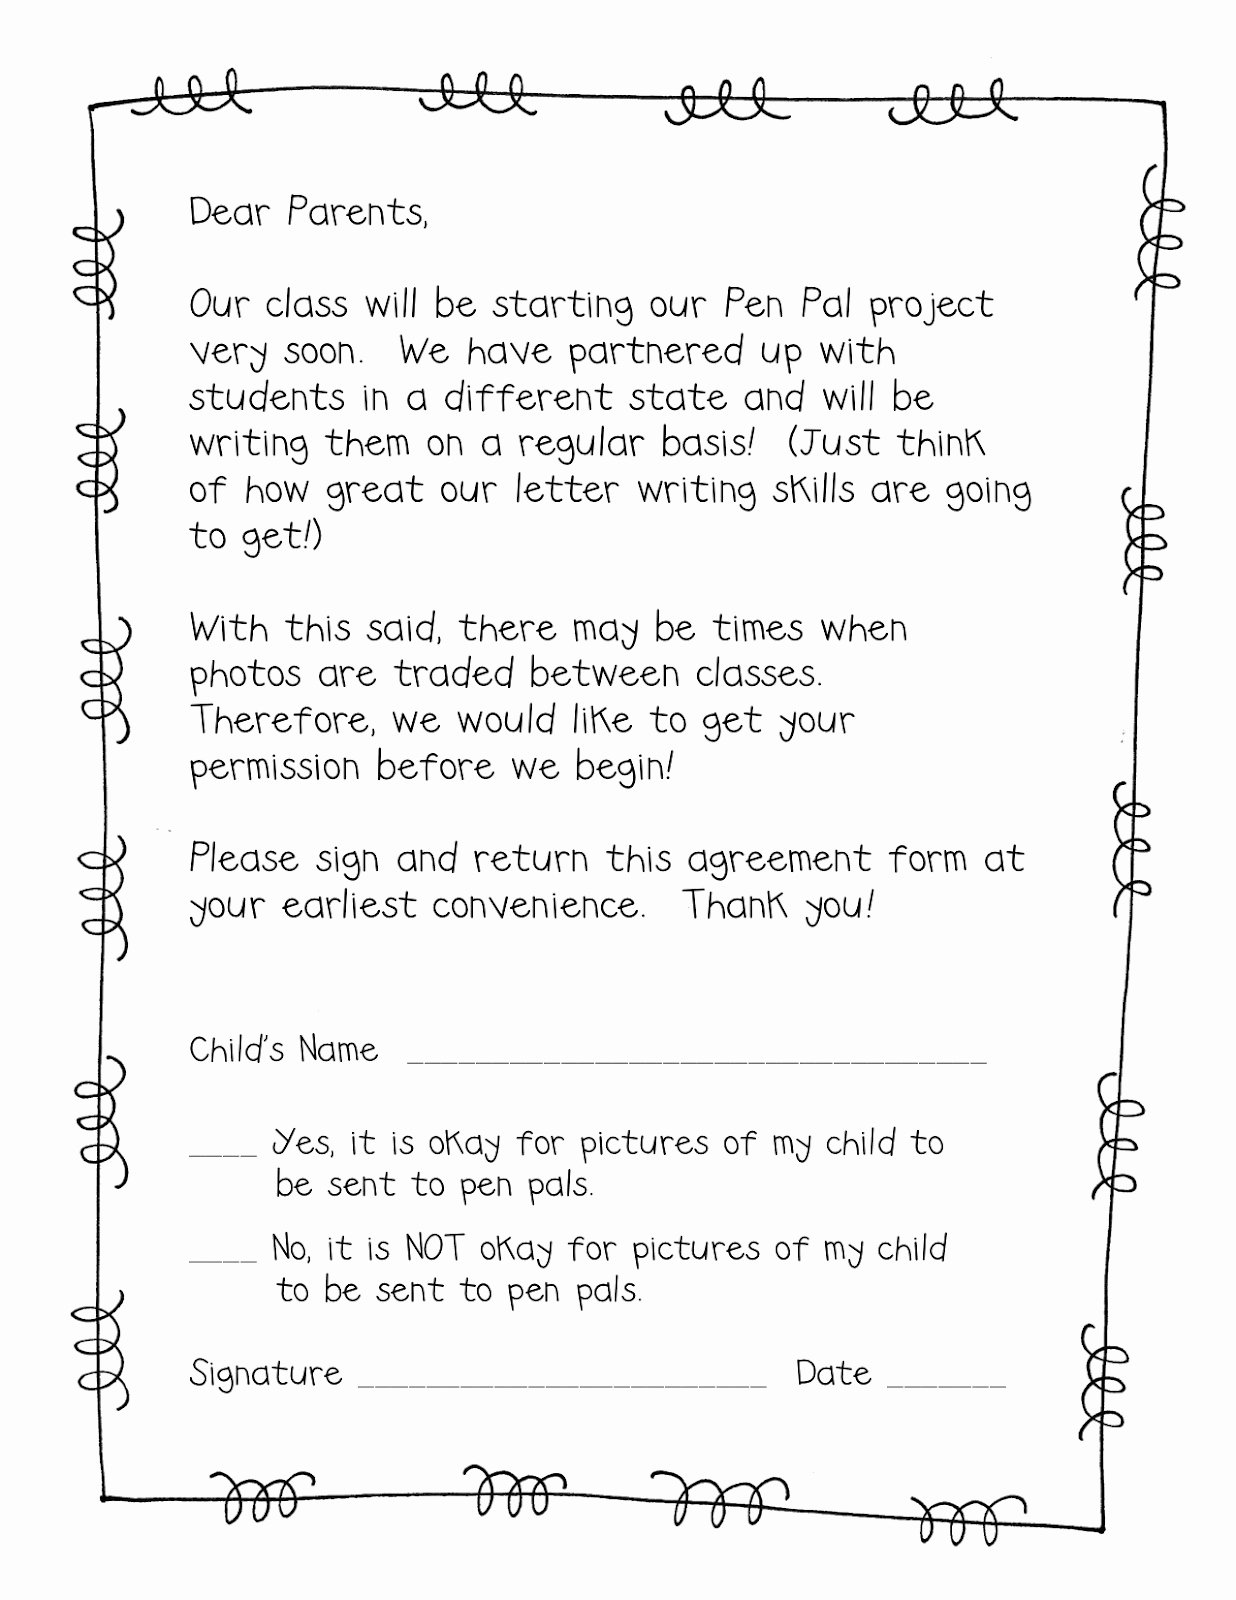 Letter to Parents Template Luxury form Frenzy Pen Pal Freebie Teacher Idea Factory